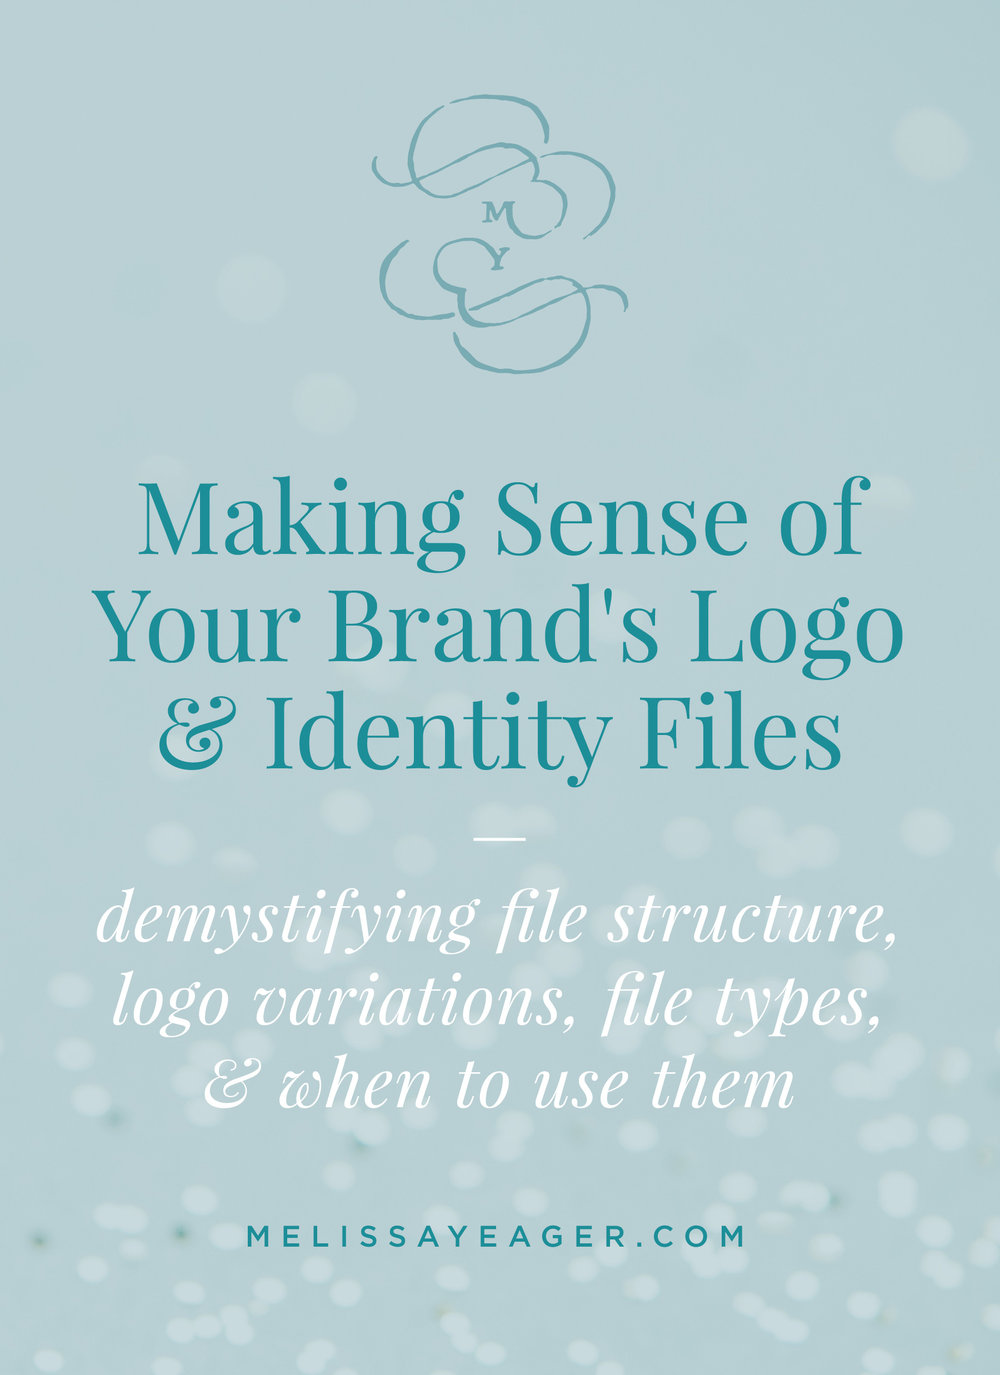 Making Sense of Your Brand's Logo & Identity Files - Demystifying file structure, logo variations, file types, & when to use them